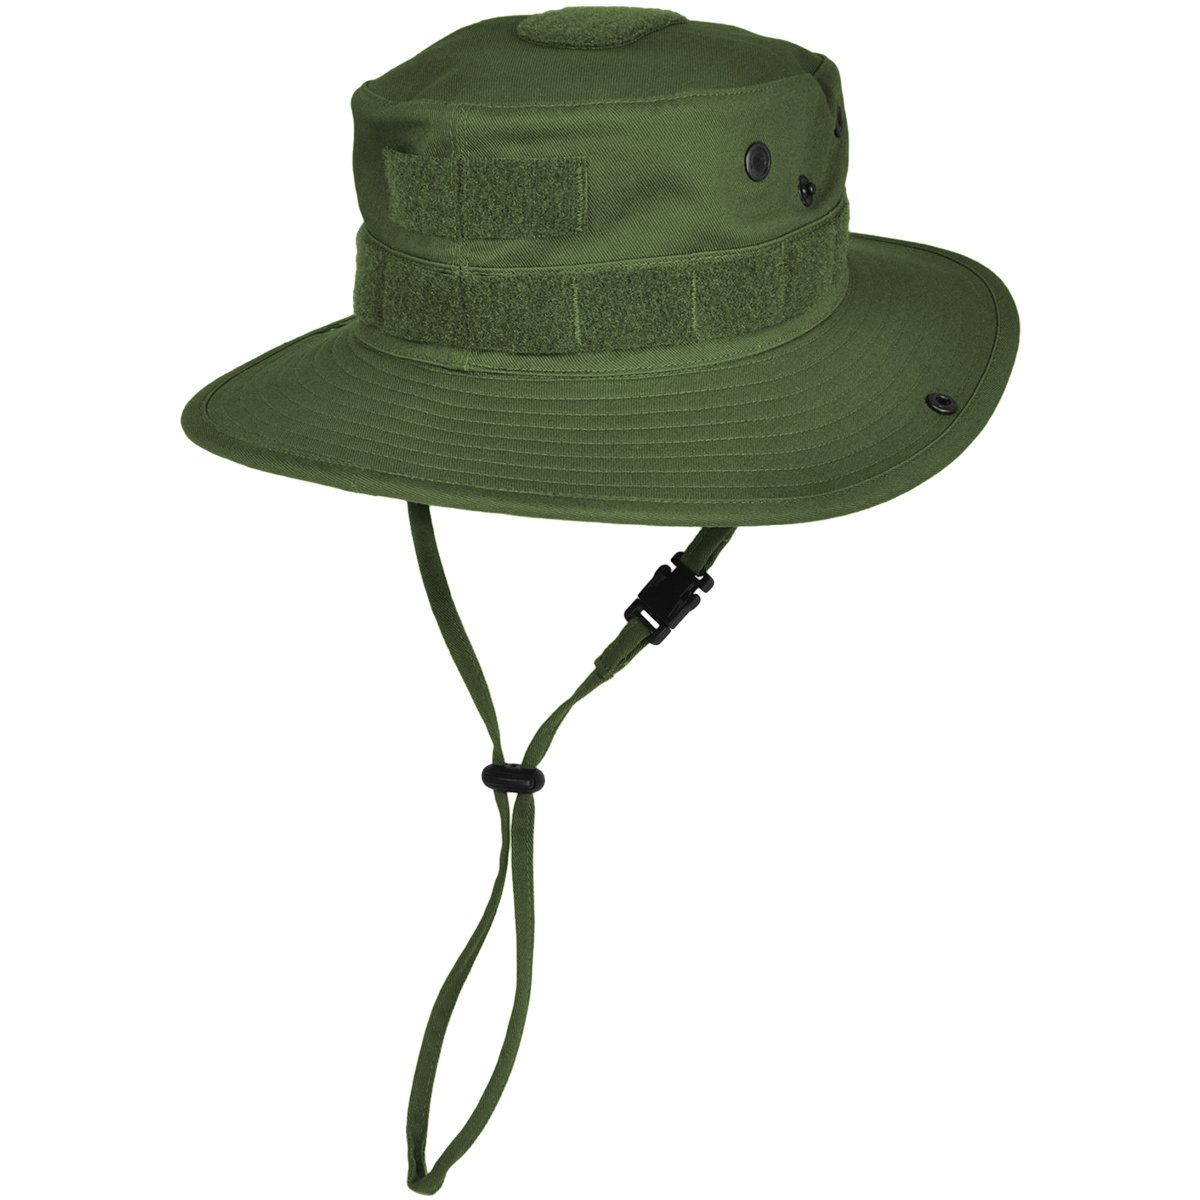 HAZARD 4 SunTac Cotton Boonie Hat with Molle, OD Green, X-Large